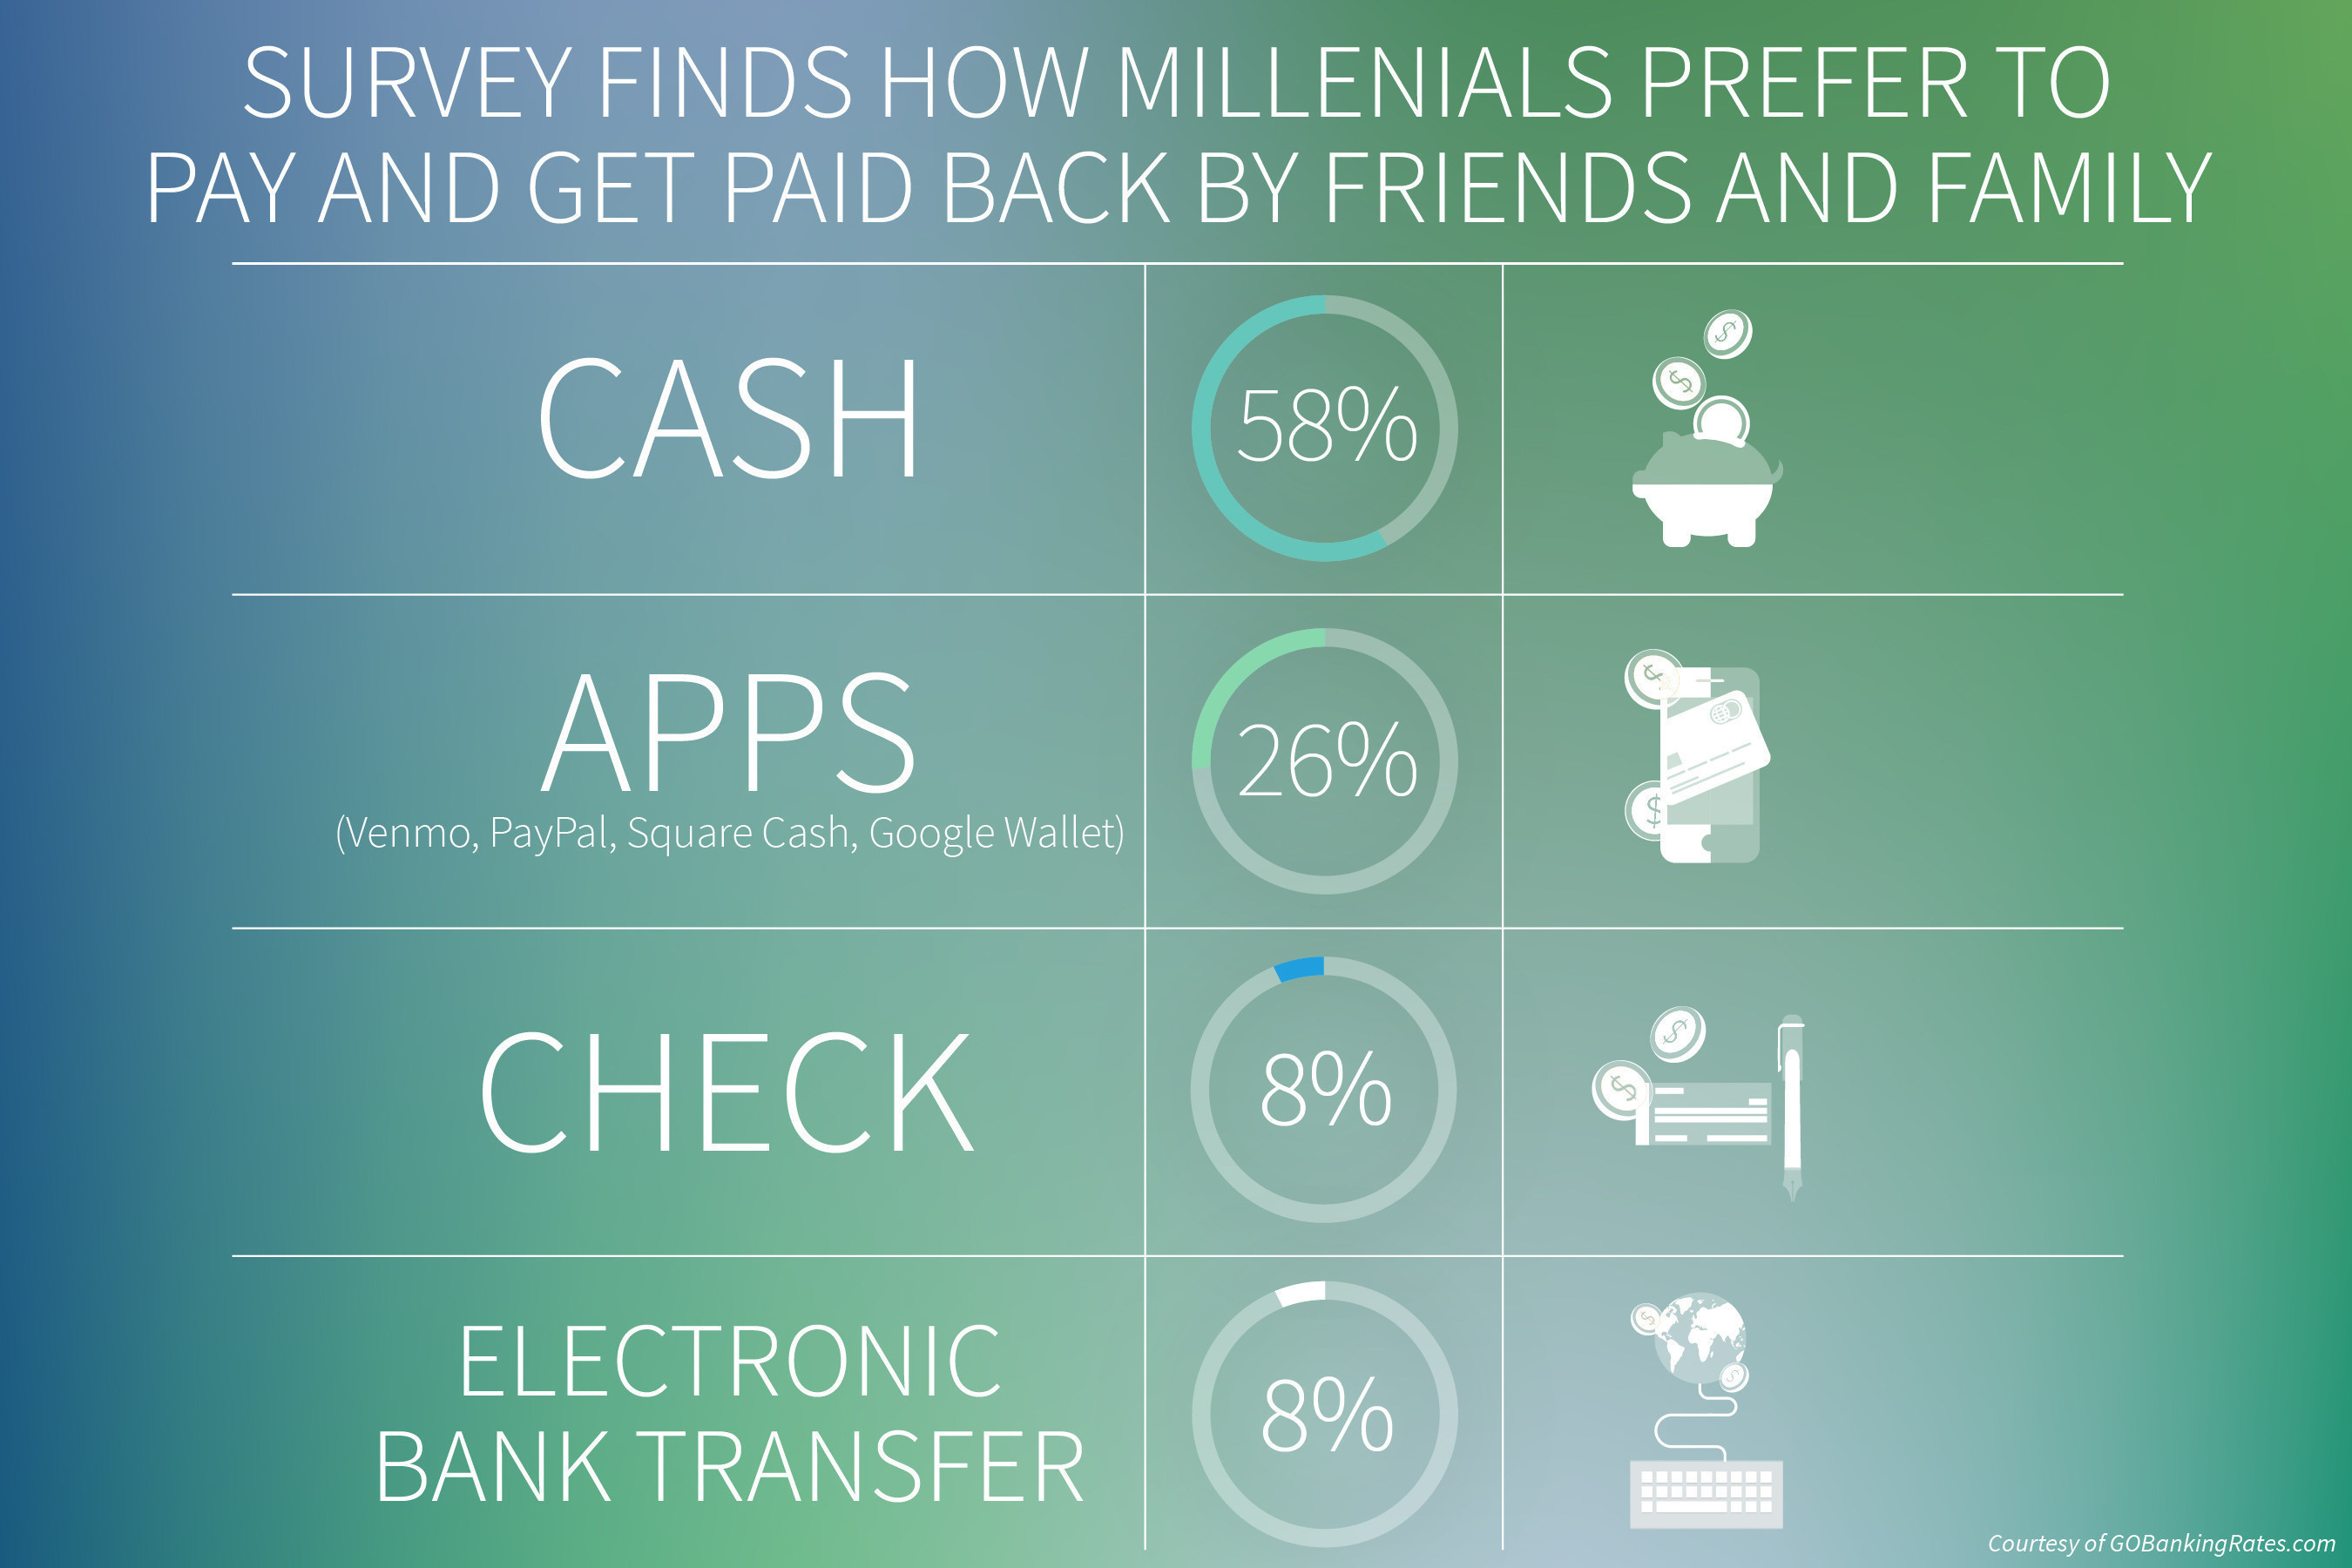 GOBankingRates survey finds how millennials prefer to pay and get paid back by friends